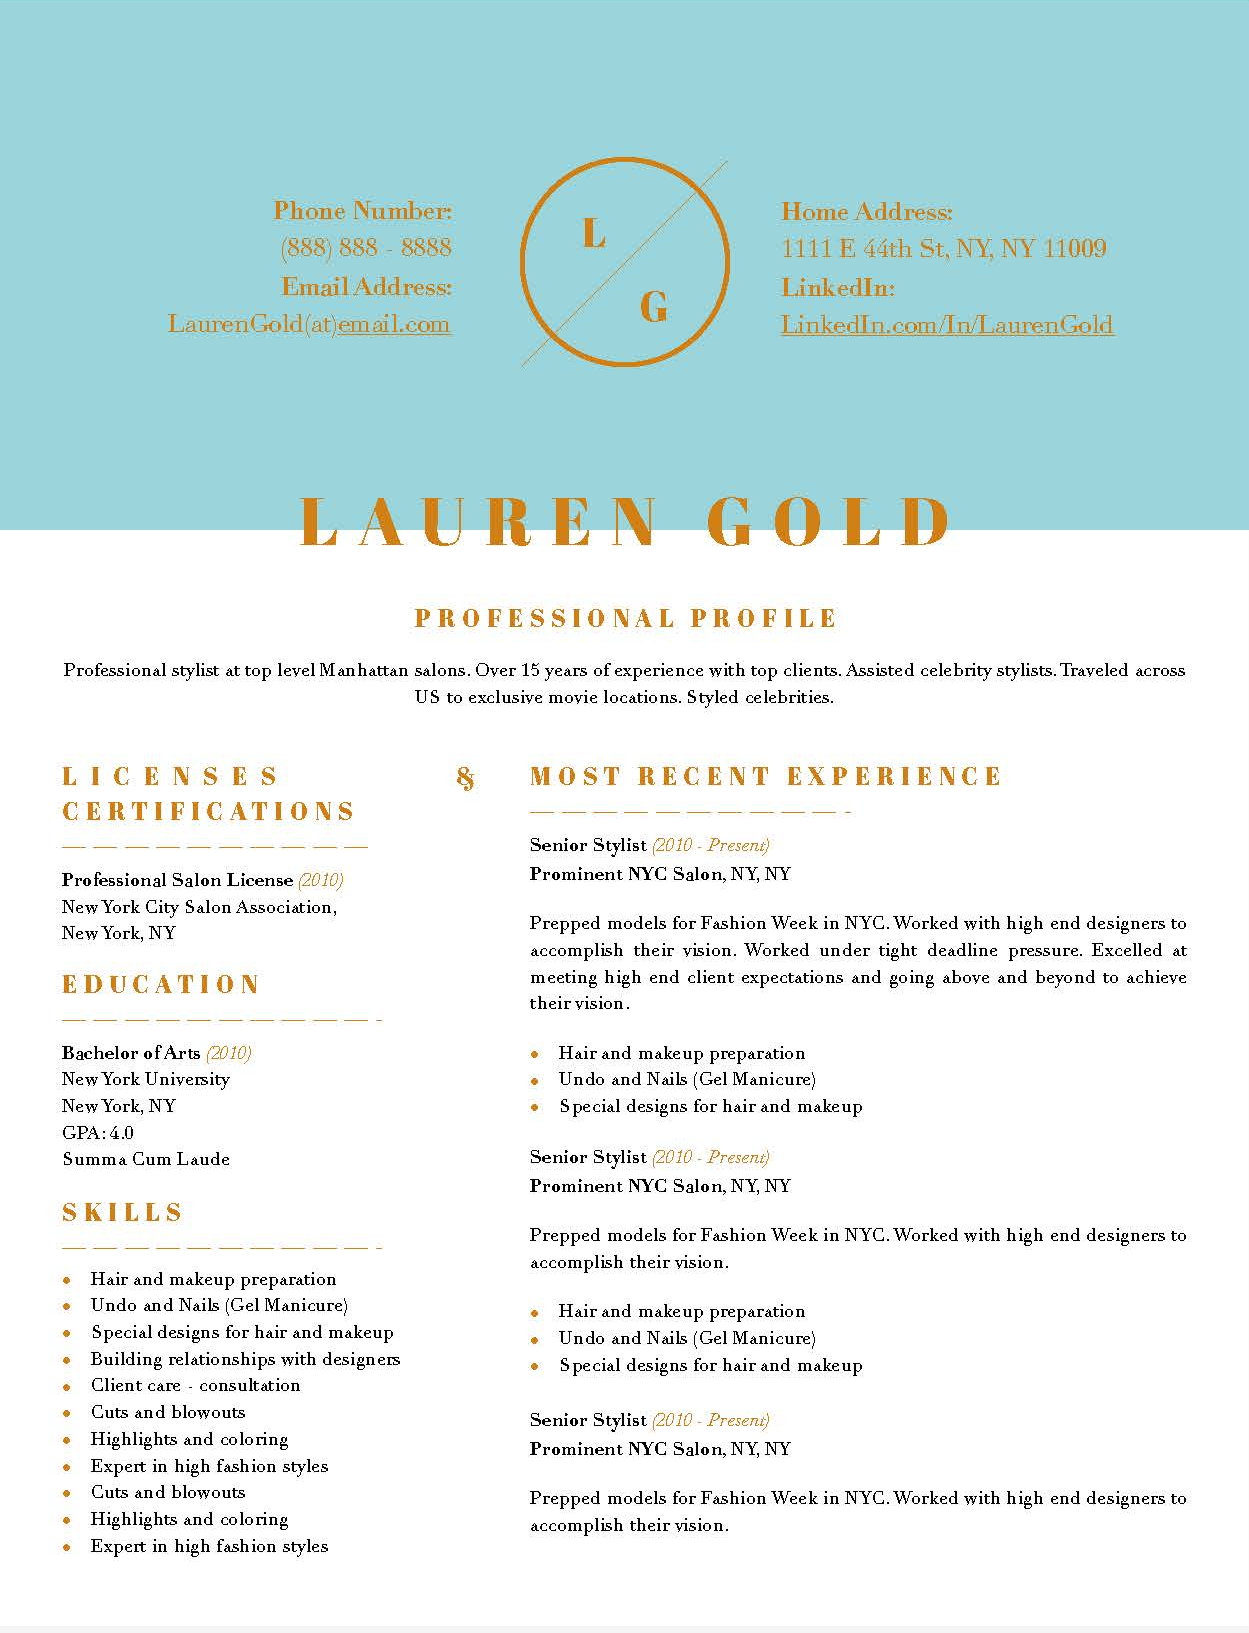 Lauren Gold Fashion Downloadable Resume Template and Cover Letter Template for Microsoft Word and Apple Pages